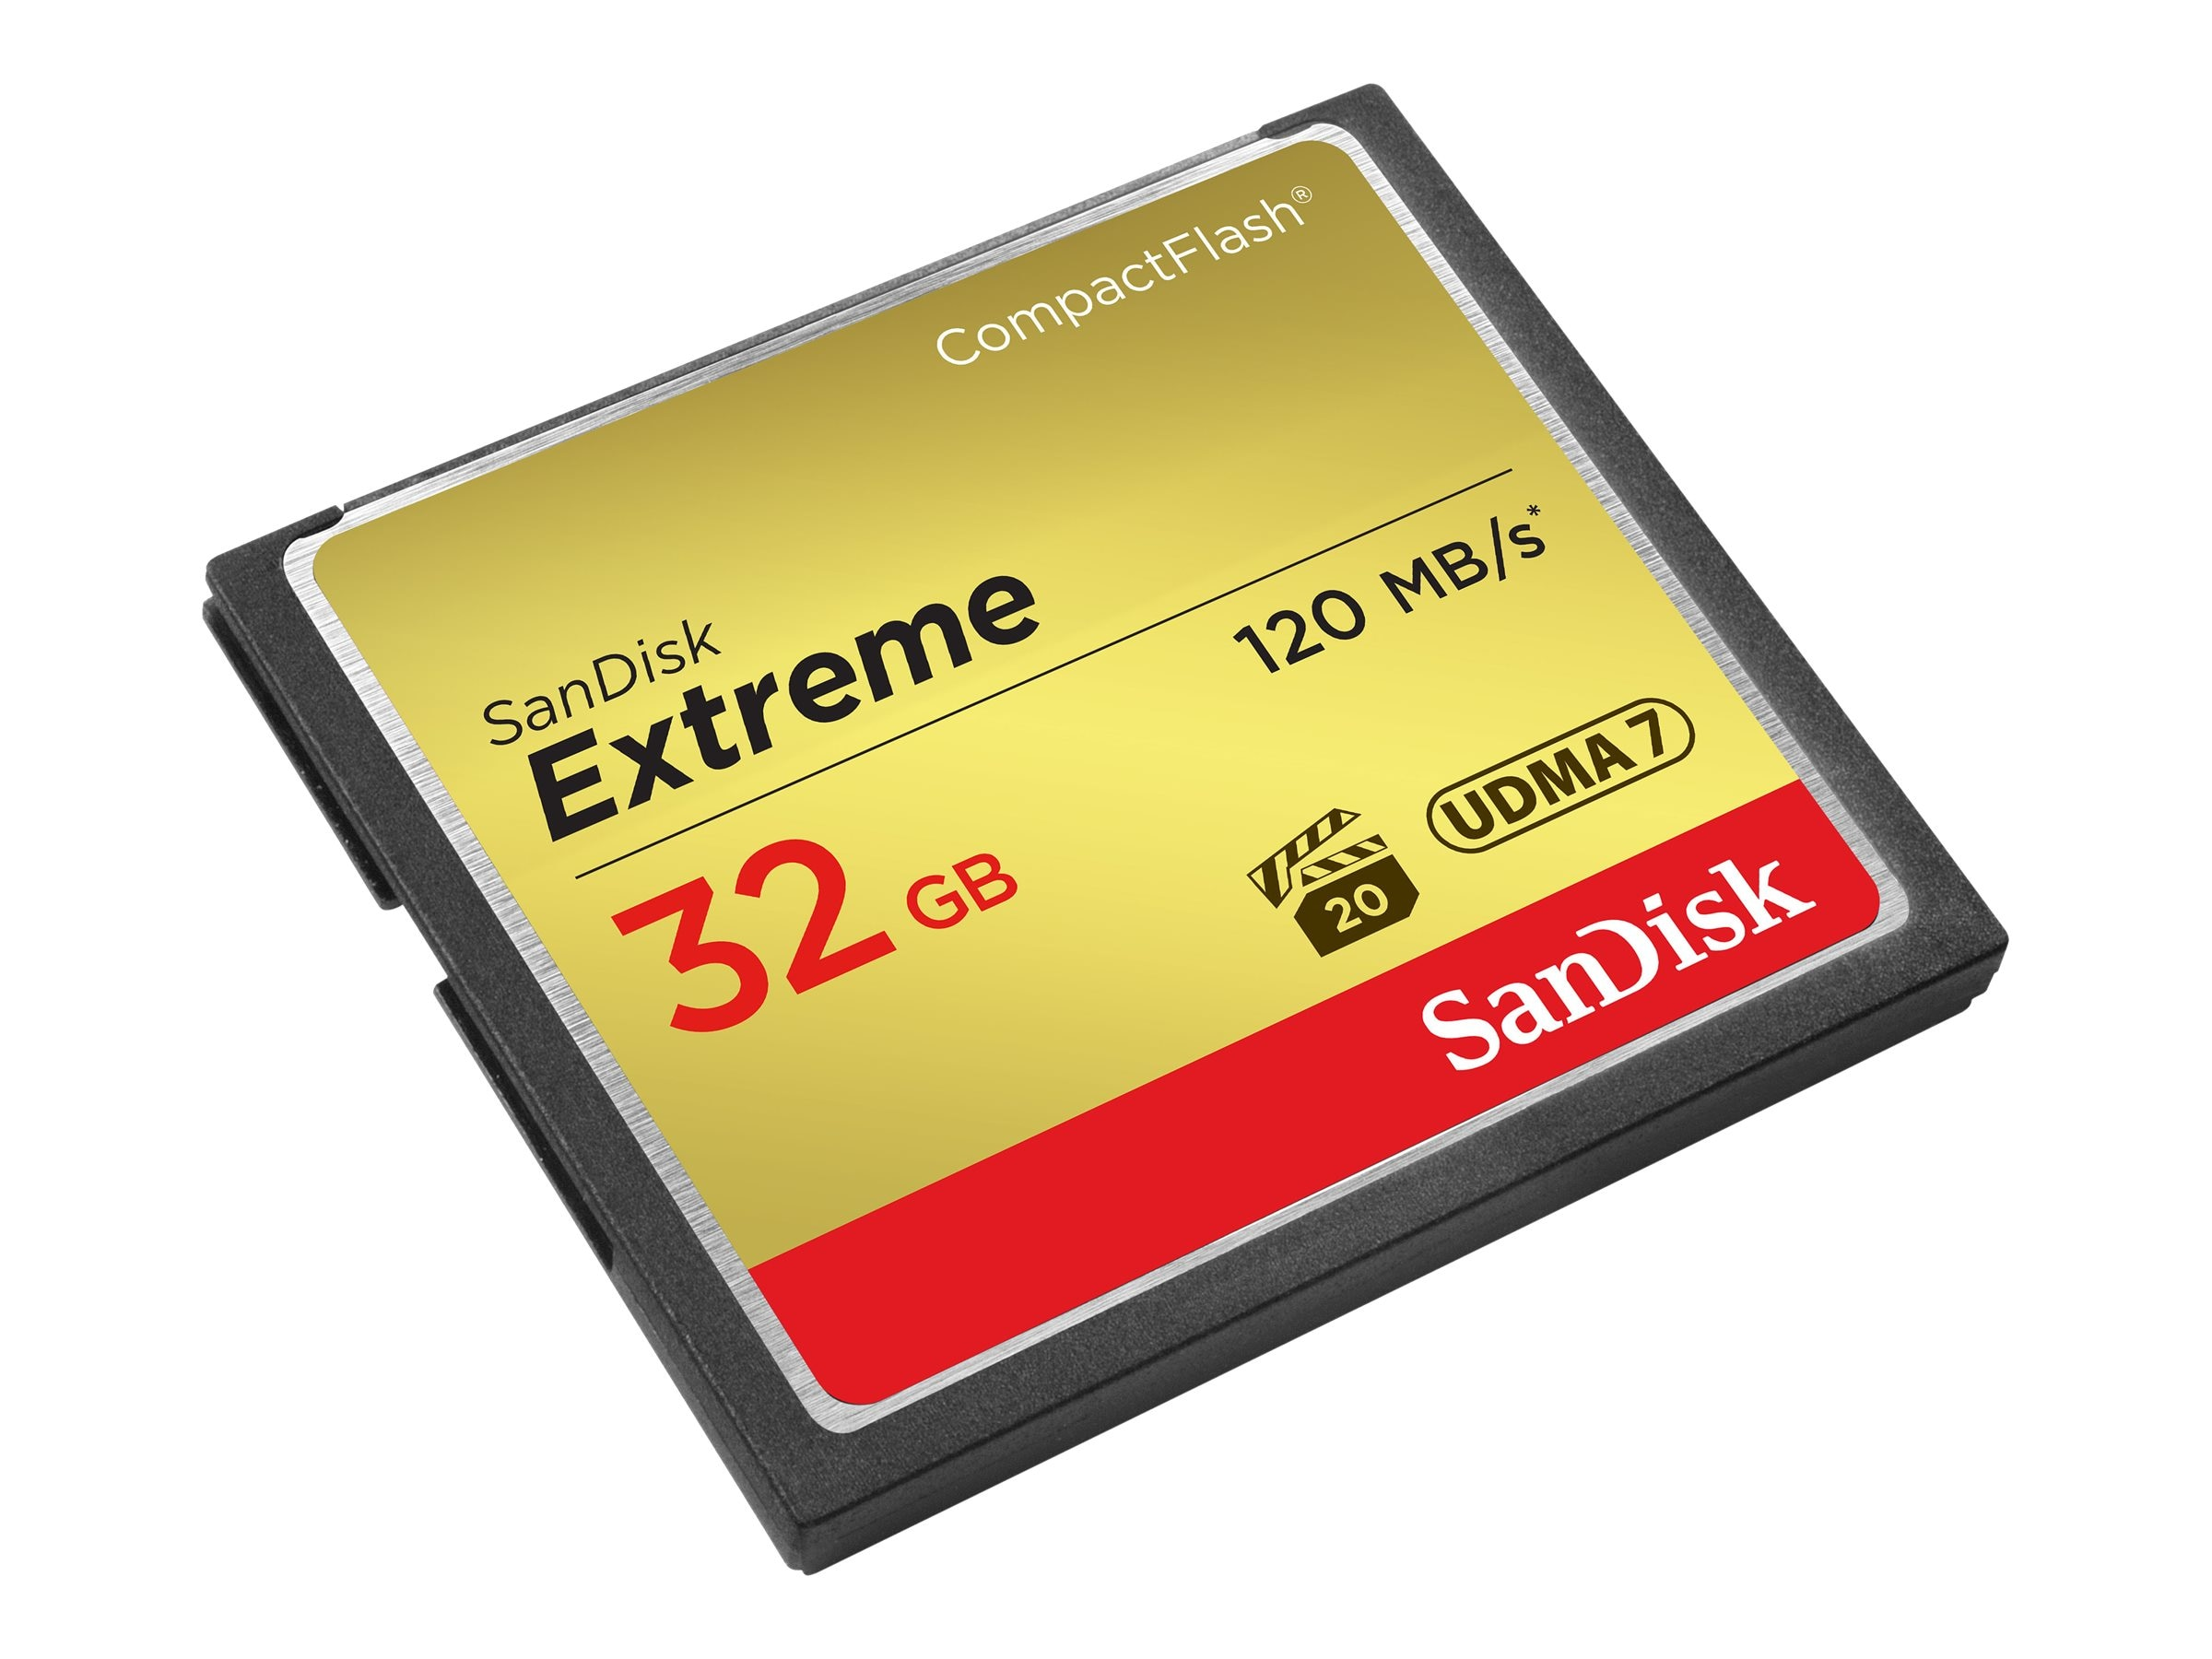 SanDisk 32GB Extreme CompactFlash Memory Card, SDCFXS-032G-A46